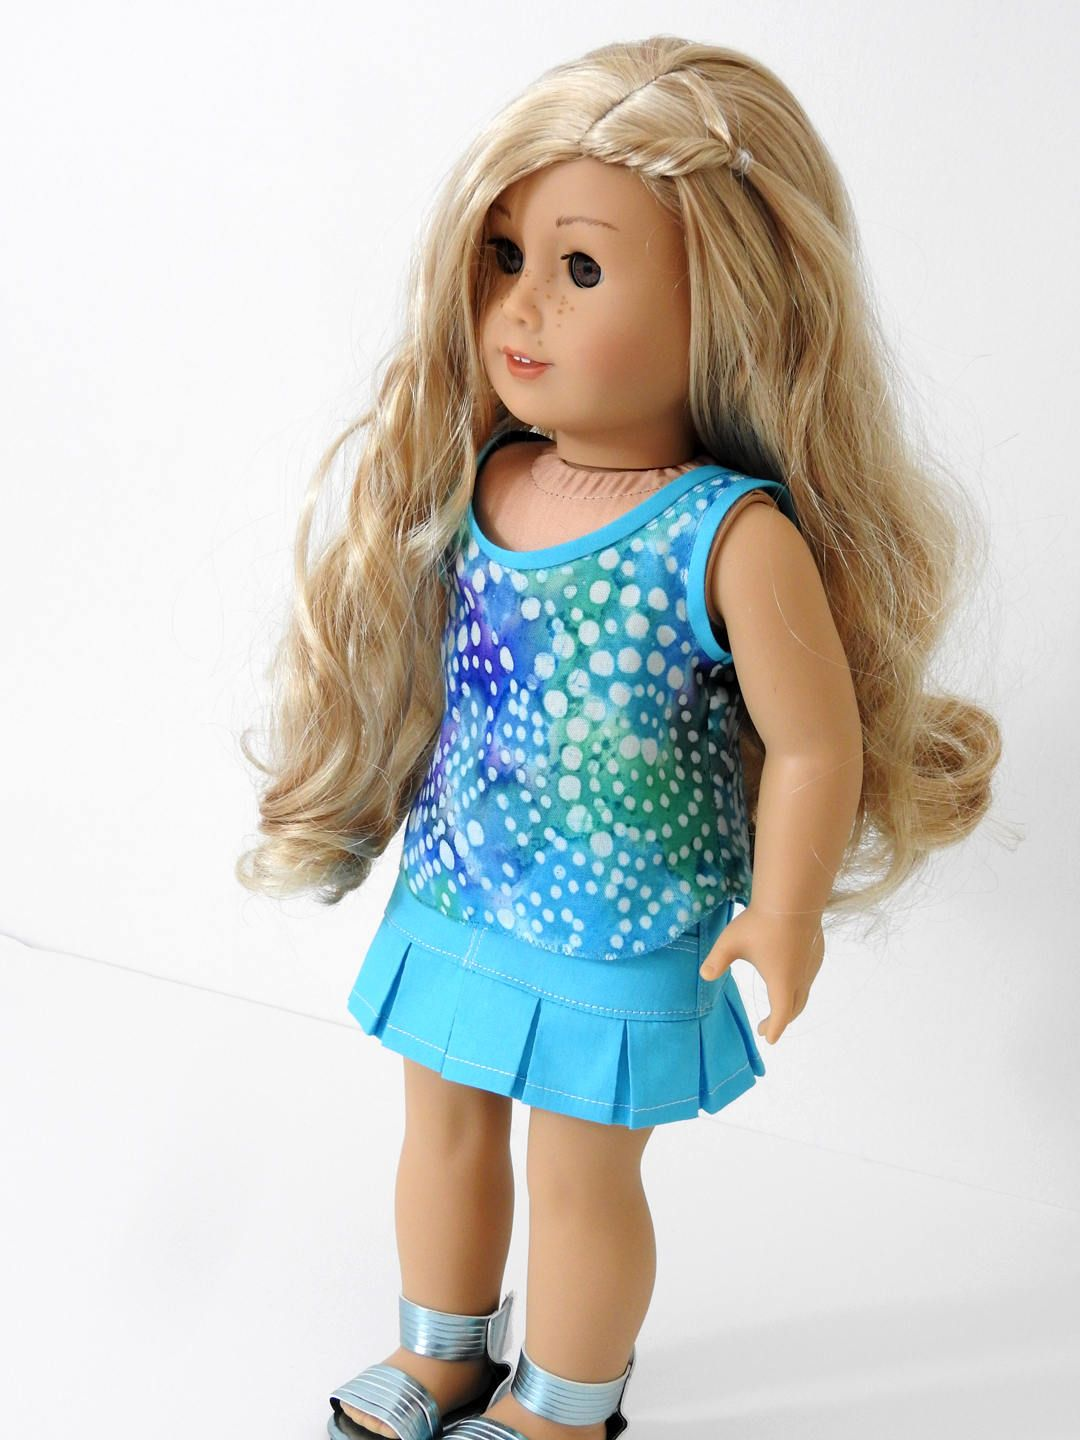 18 Inch Doll Clothes, AG Doll Clothes, Trendy 18 Inch Doll Clothes ...